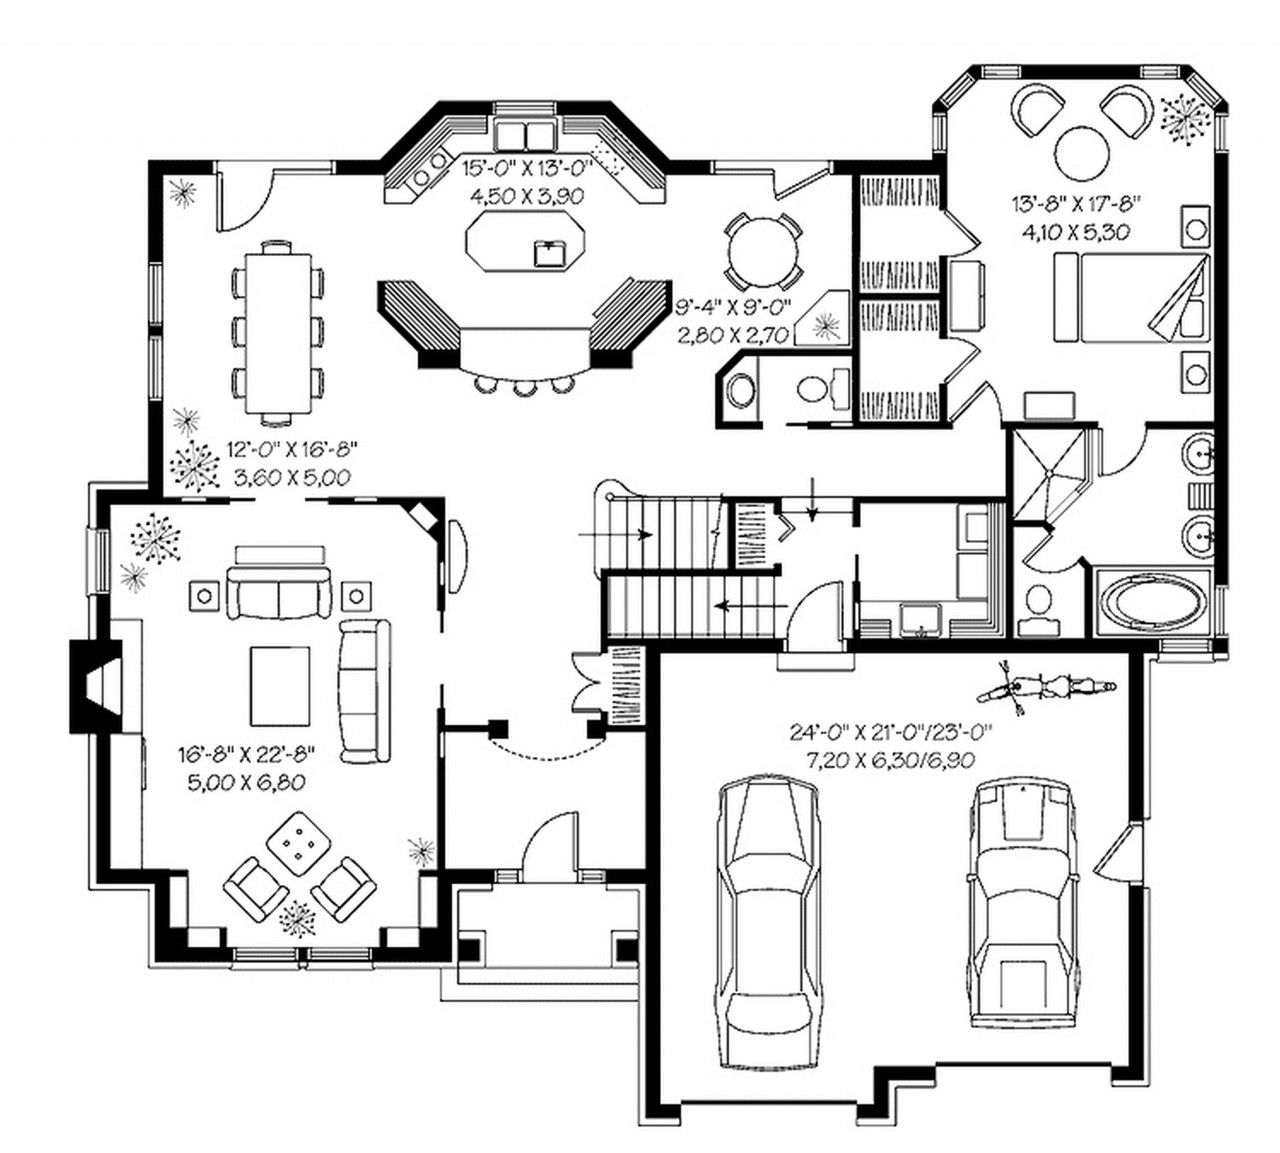 Beautiful minimalist house plans plan gorgeous penthouse design remarkable utensils disposition awesome square house plans